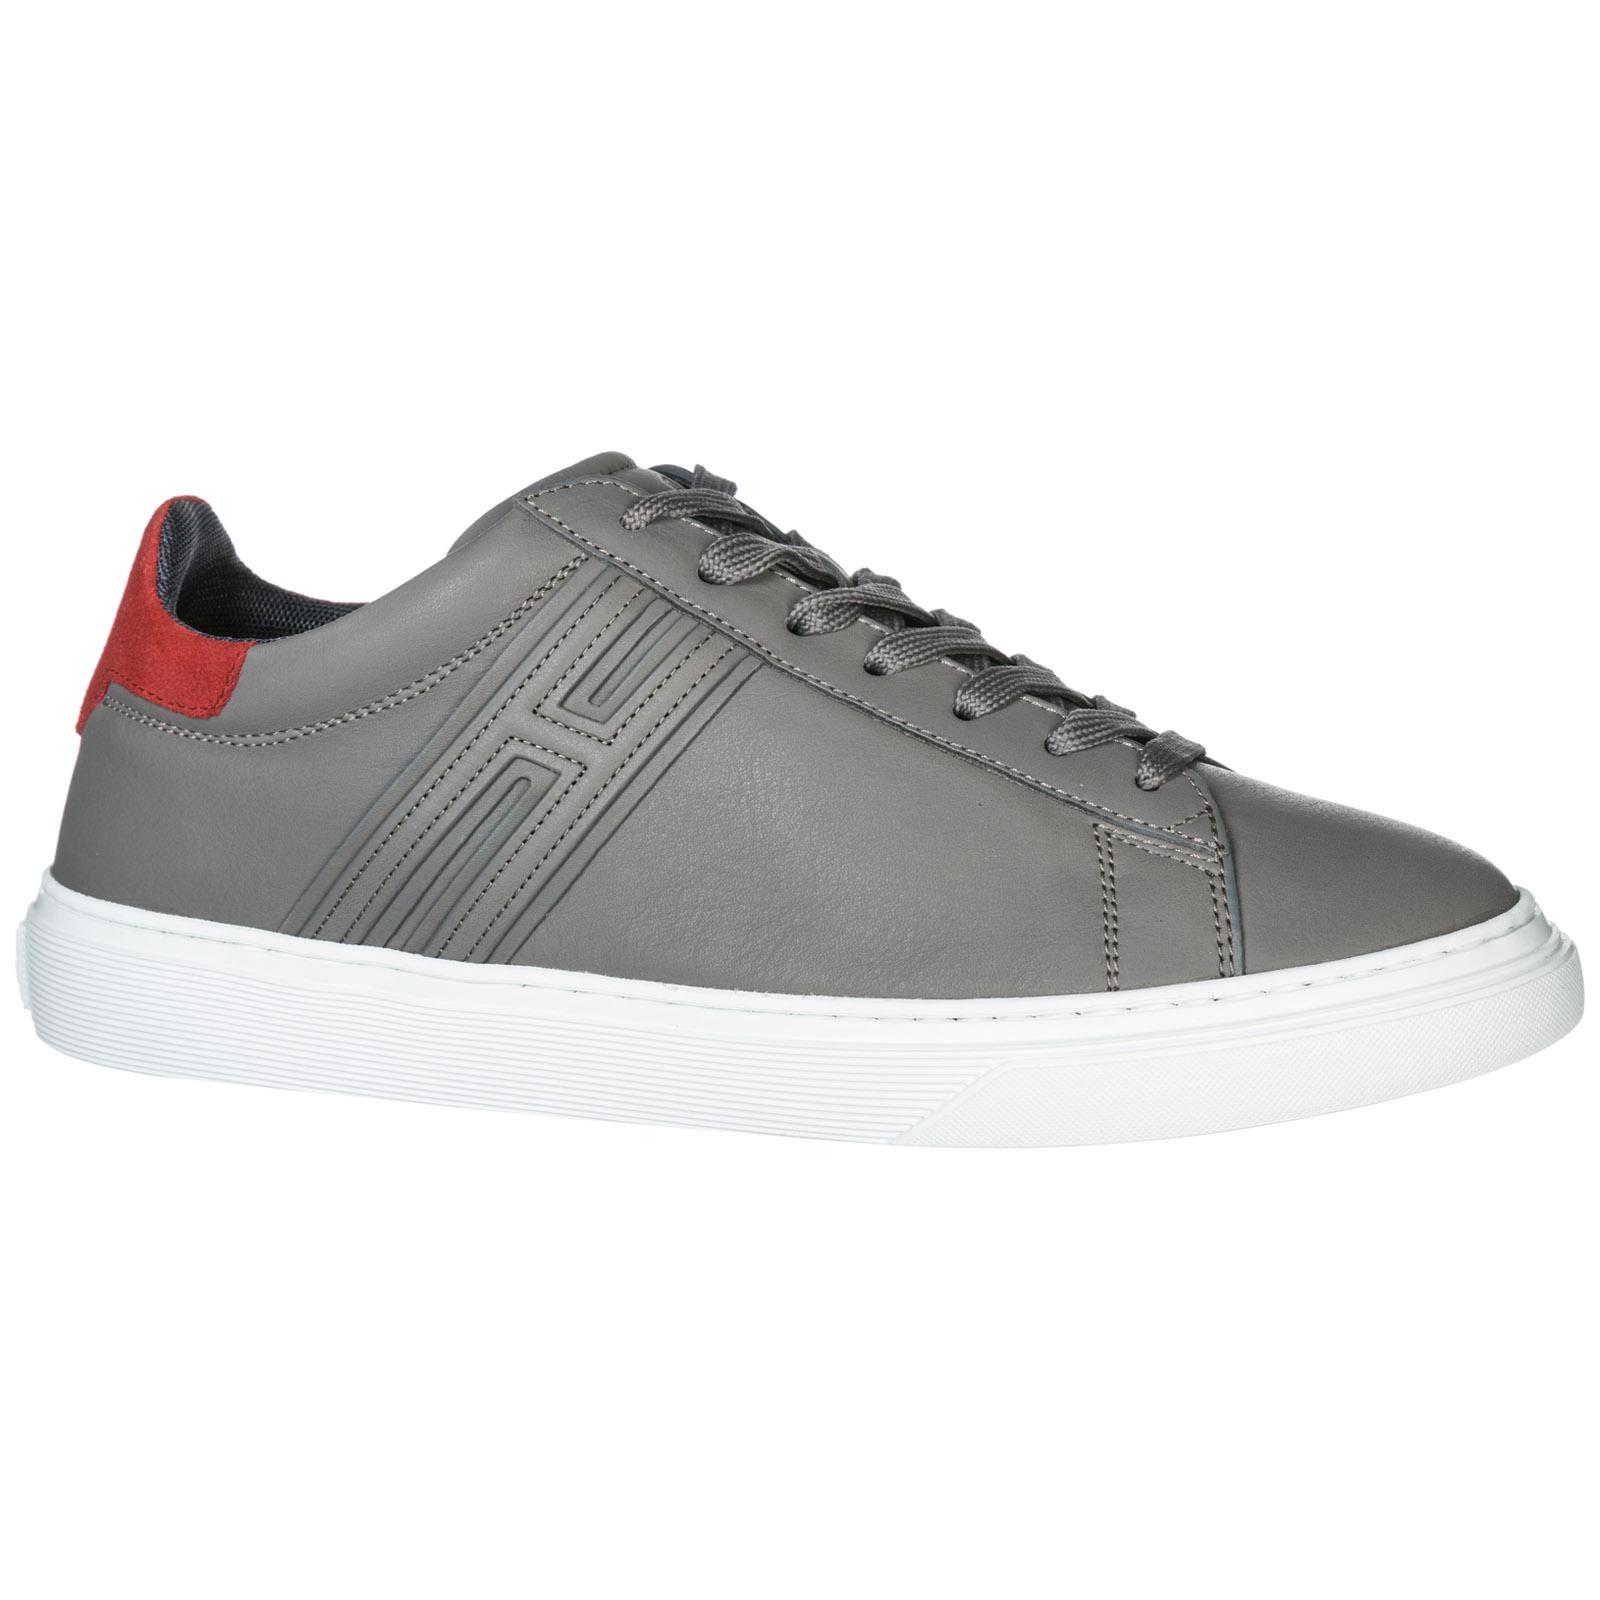 Lyst - Hogan Shoes Leather Trainers Sneakers H365 in Gray for Men cc2683710ce